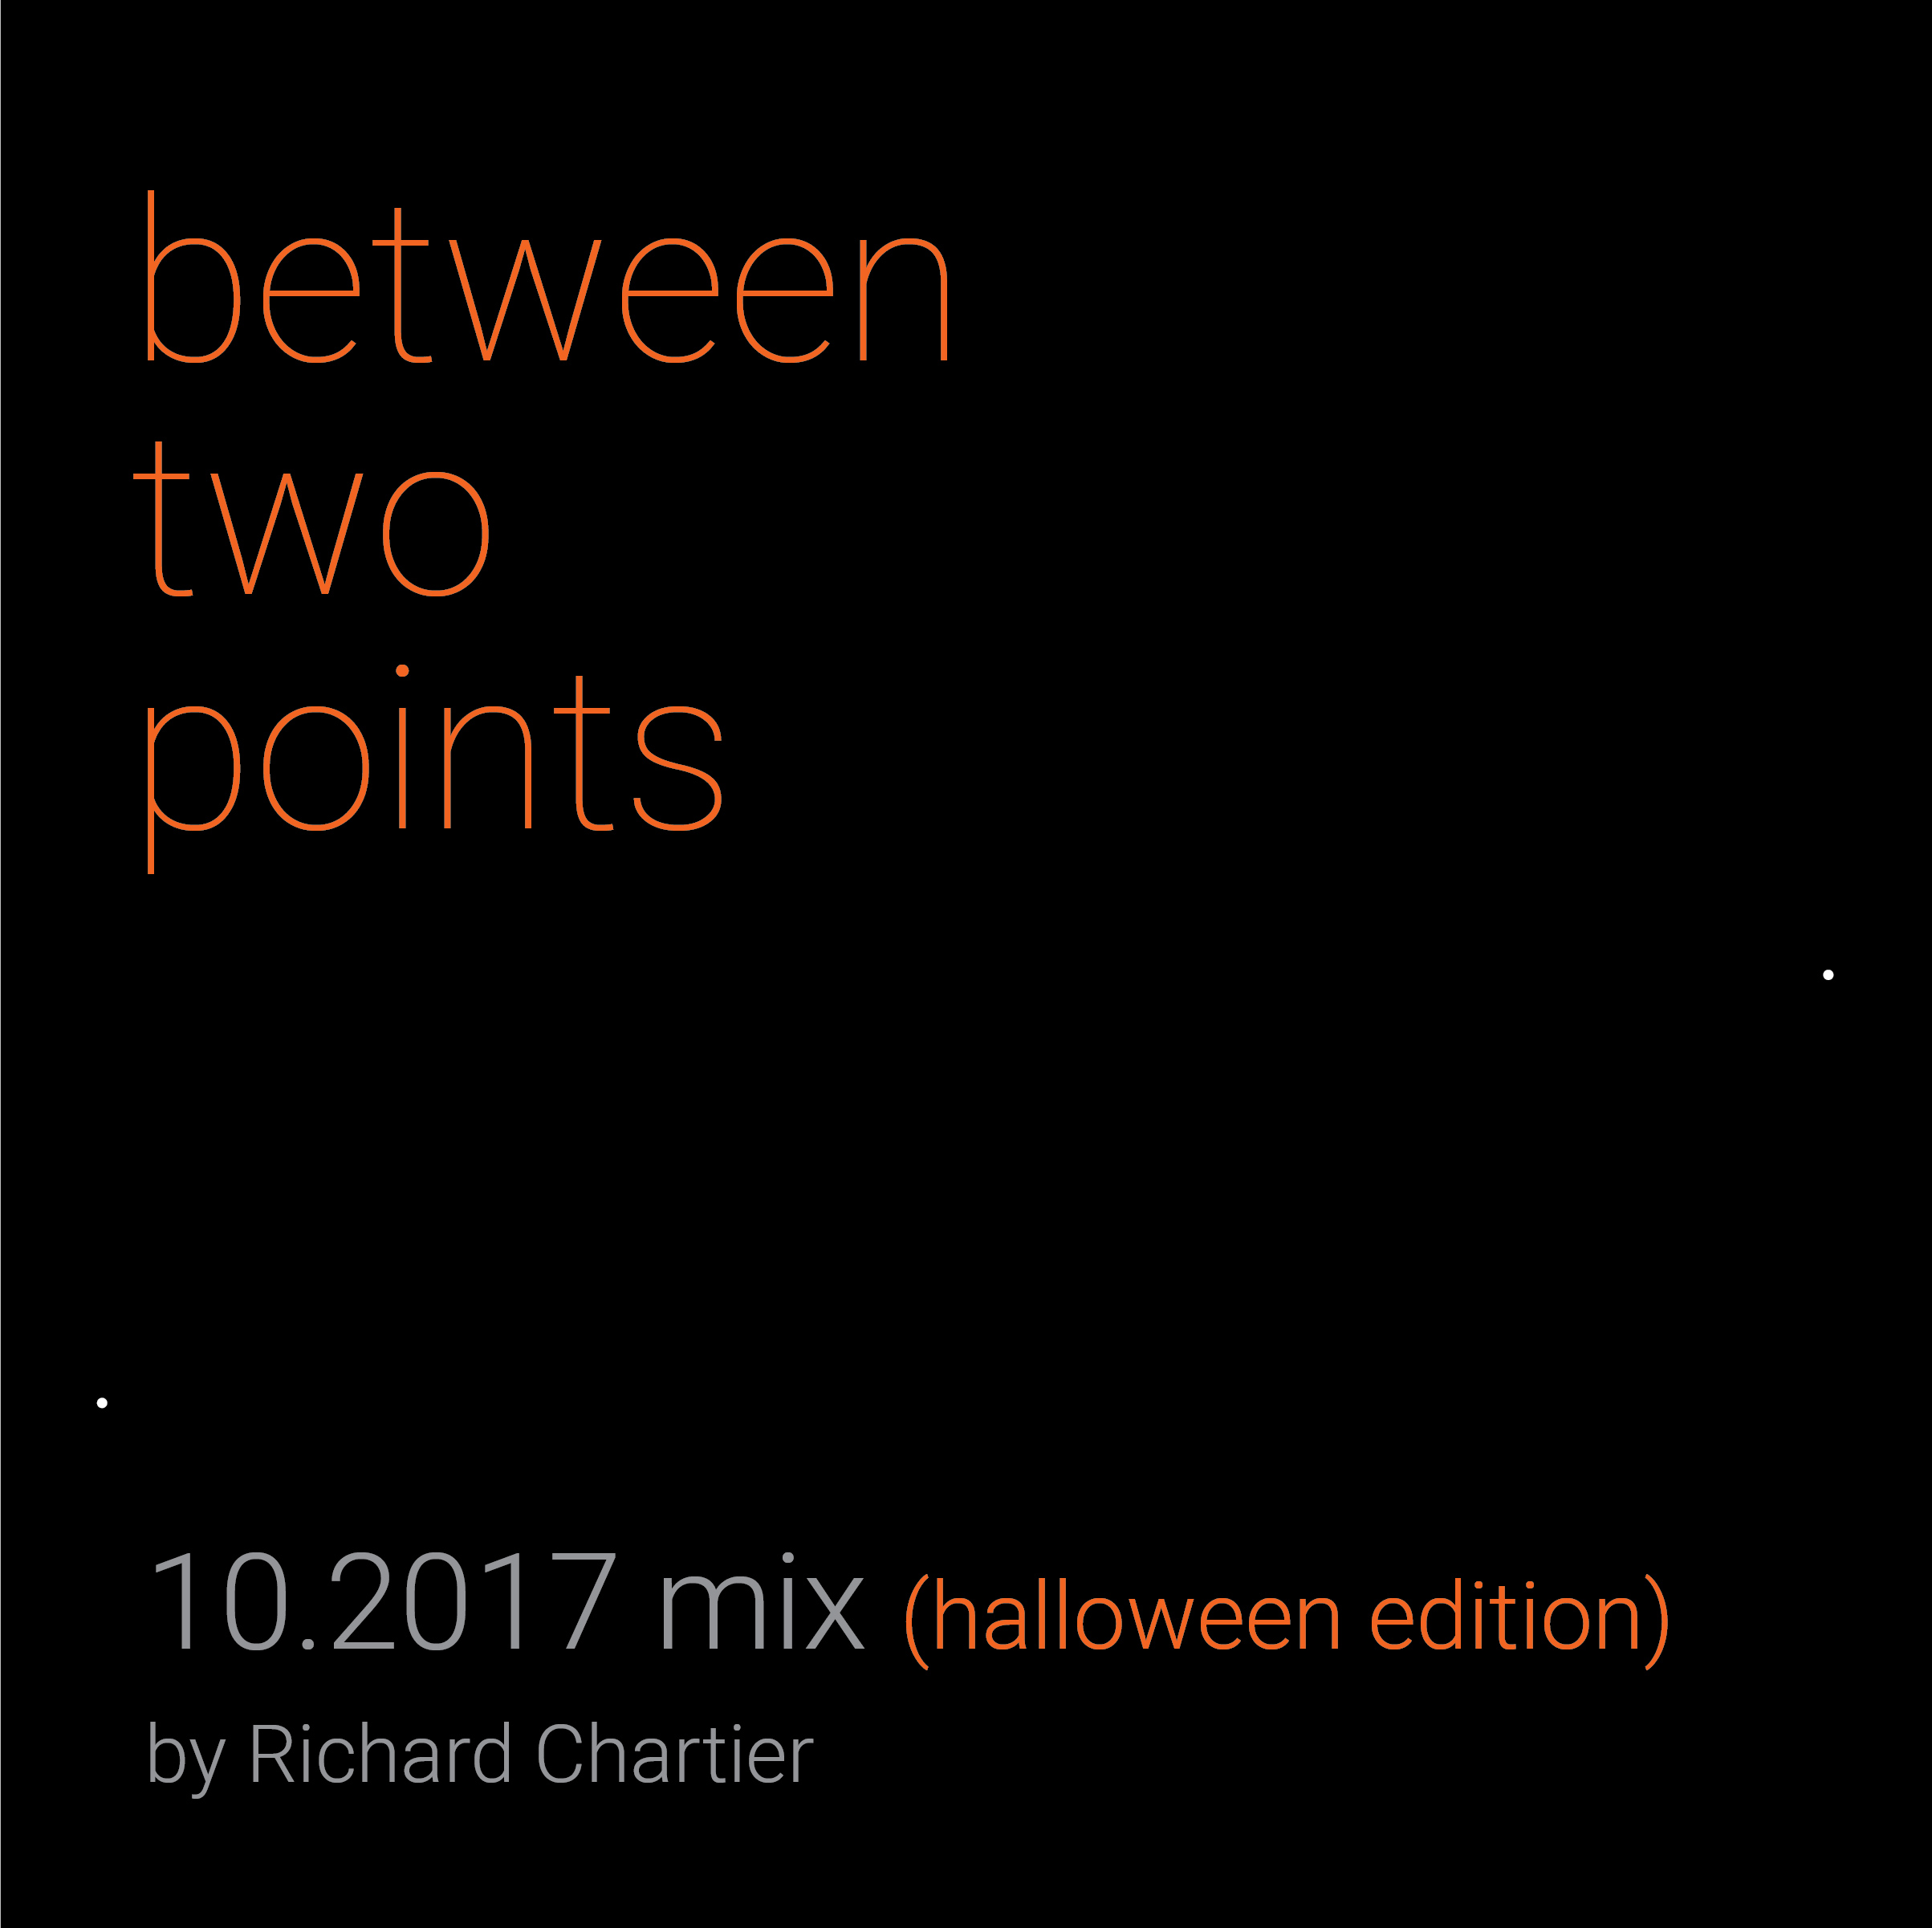 betweentwopoints_halloween